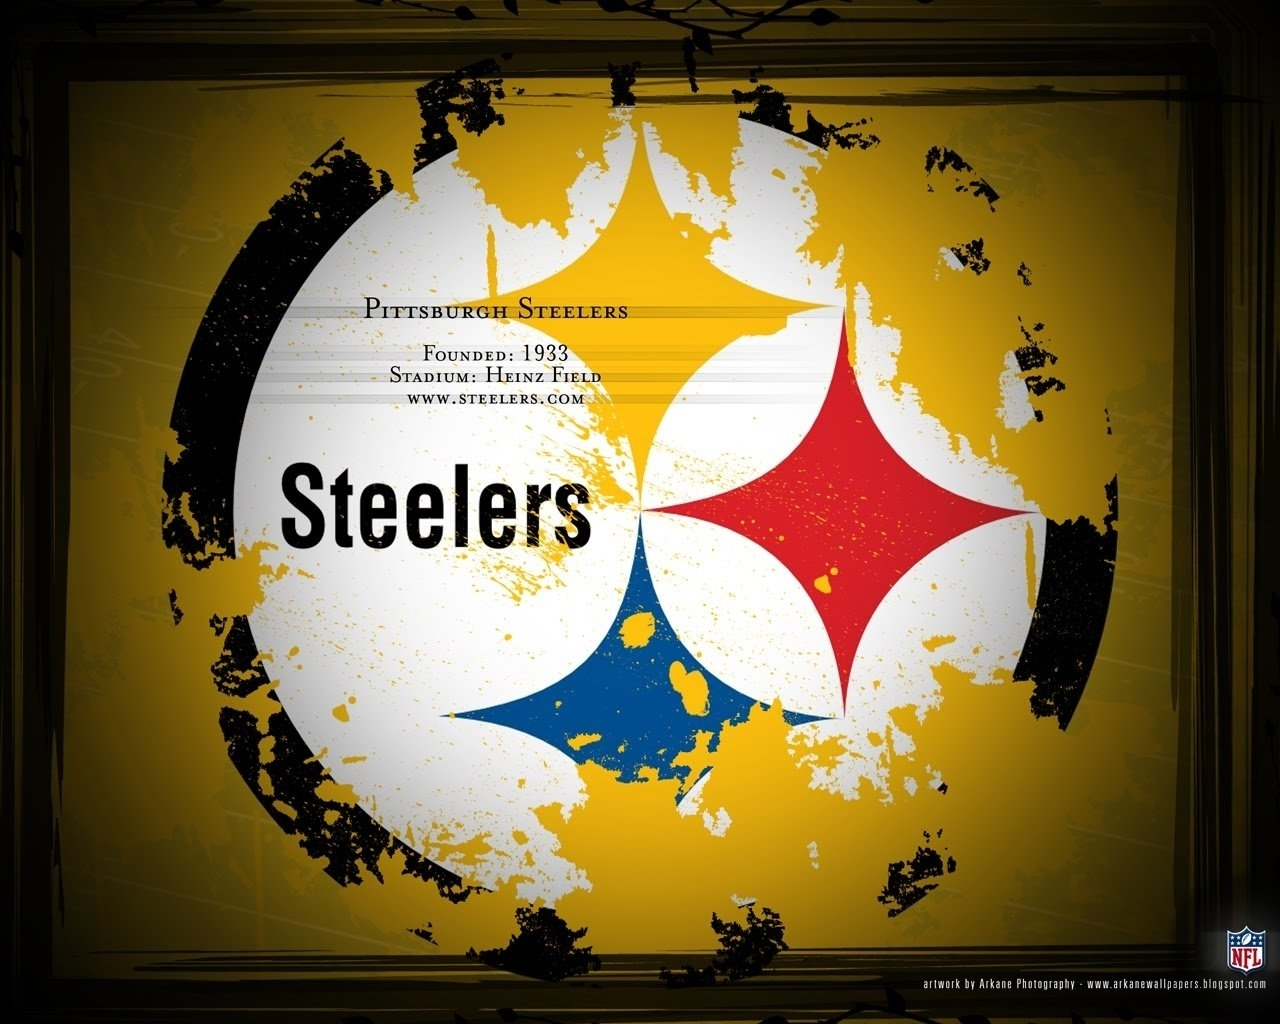 92 pittsburgh steelers hd wallpapers | background images - wallpaper